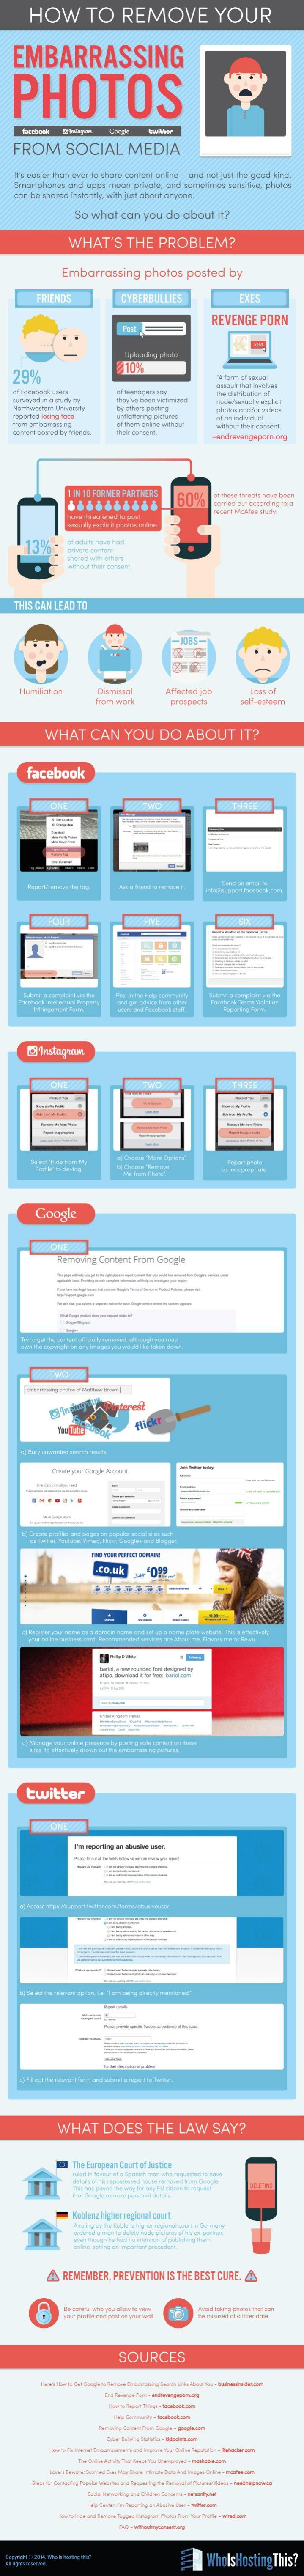 How To Remove Your Embarrassing Photos From SocialMedia:  It's easier than ever to share content on #socialmedia - and not just the good kind. #Smartphones and apps mean private, and sometimes sensitive, photos can be shared instantly, with just about anyone. So what can you do about it? See this handy #infographic that gives the detailed information on how to completely remove your unwanted images from #Google search, Facebook, Twitter and #Instagram.  @boribedi